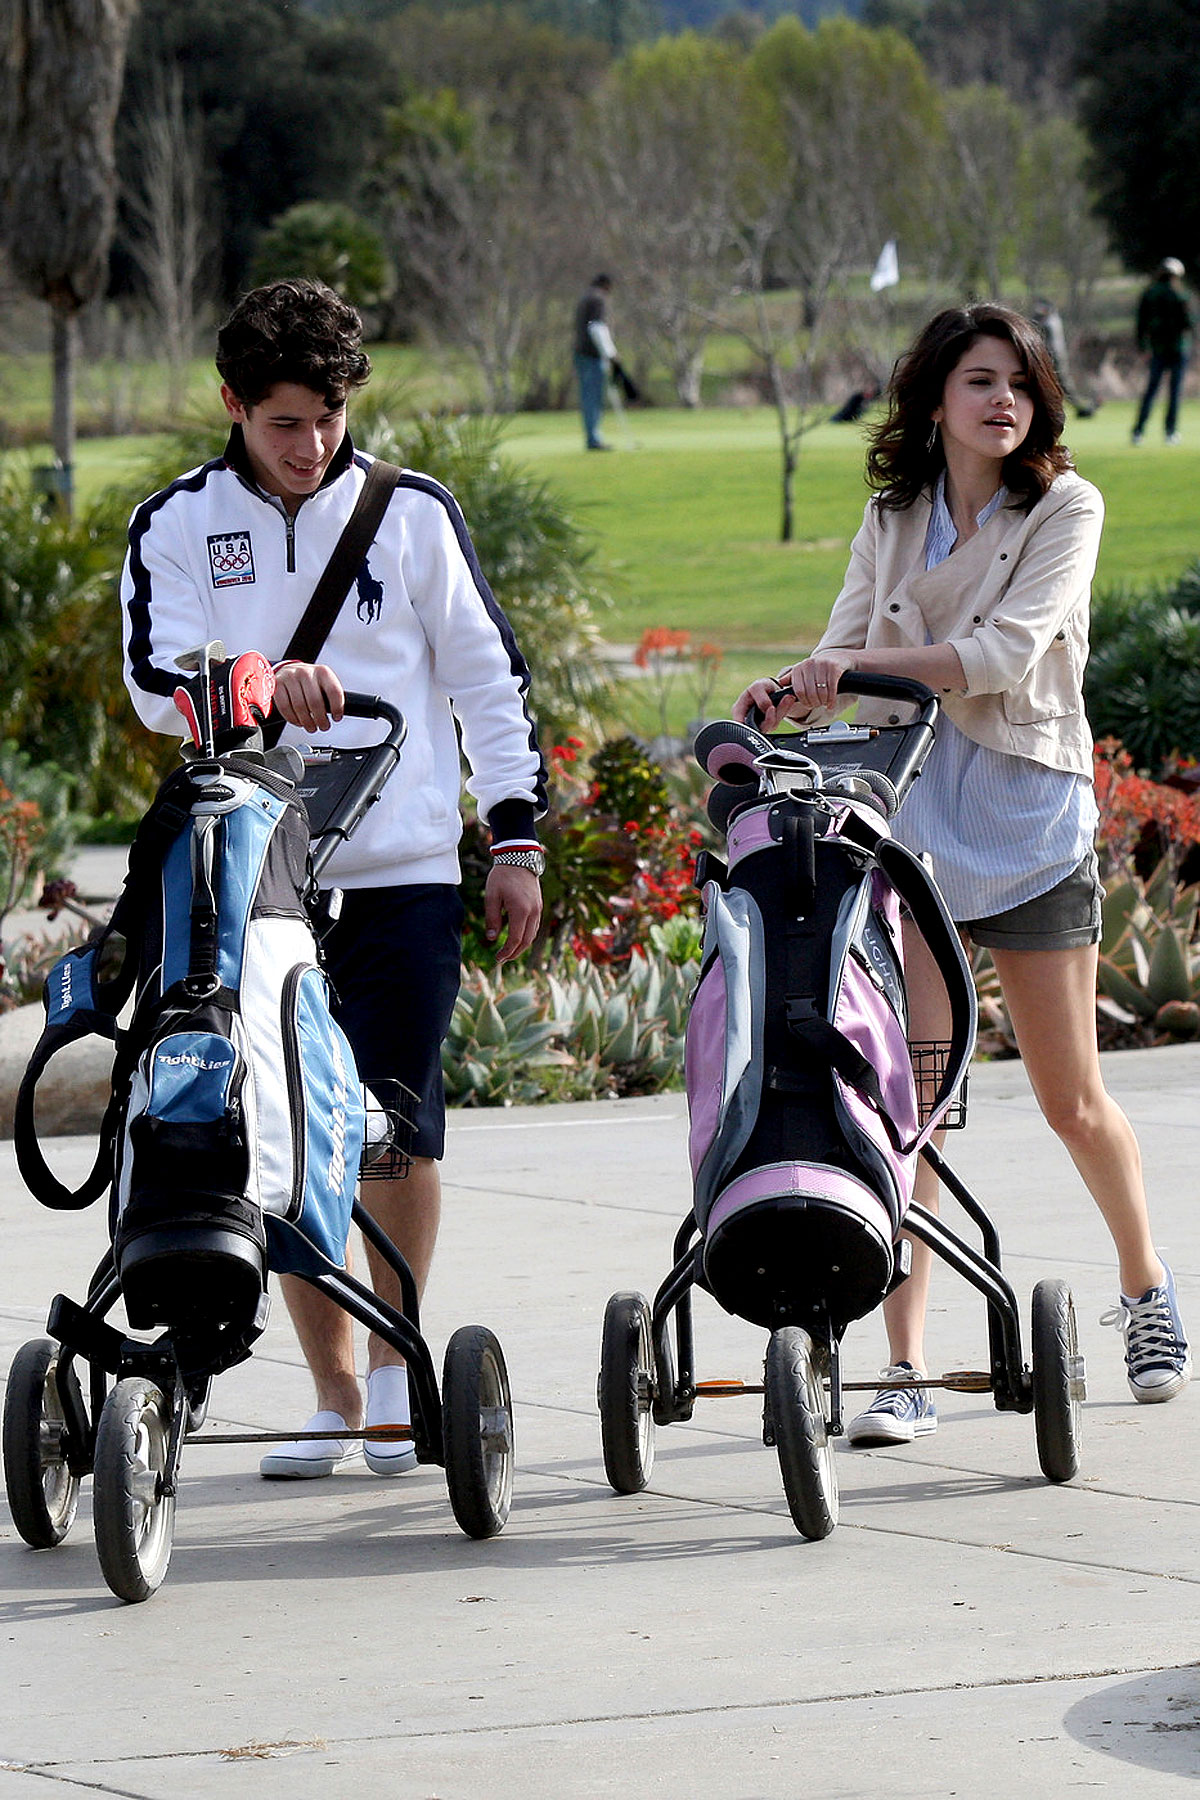 Nick Jonas & Selena Gomez 'Fore' Play-photo